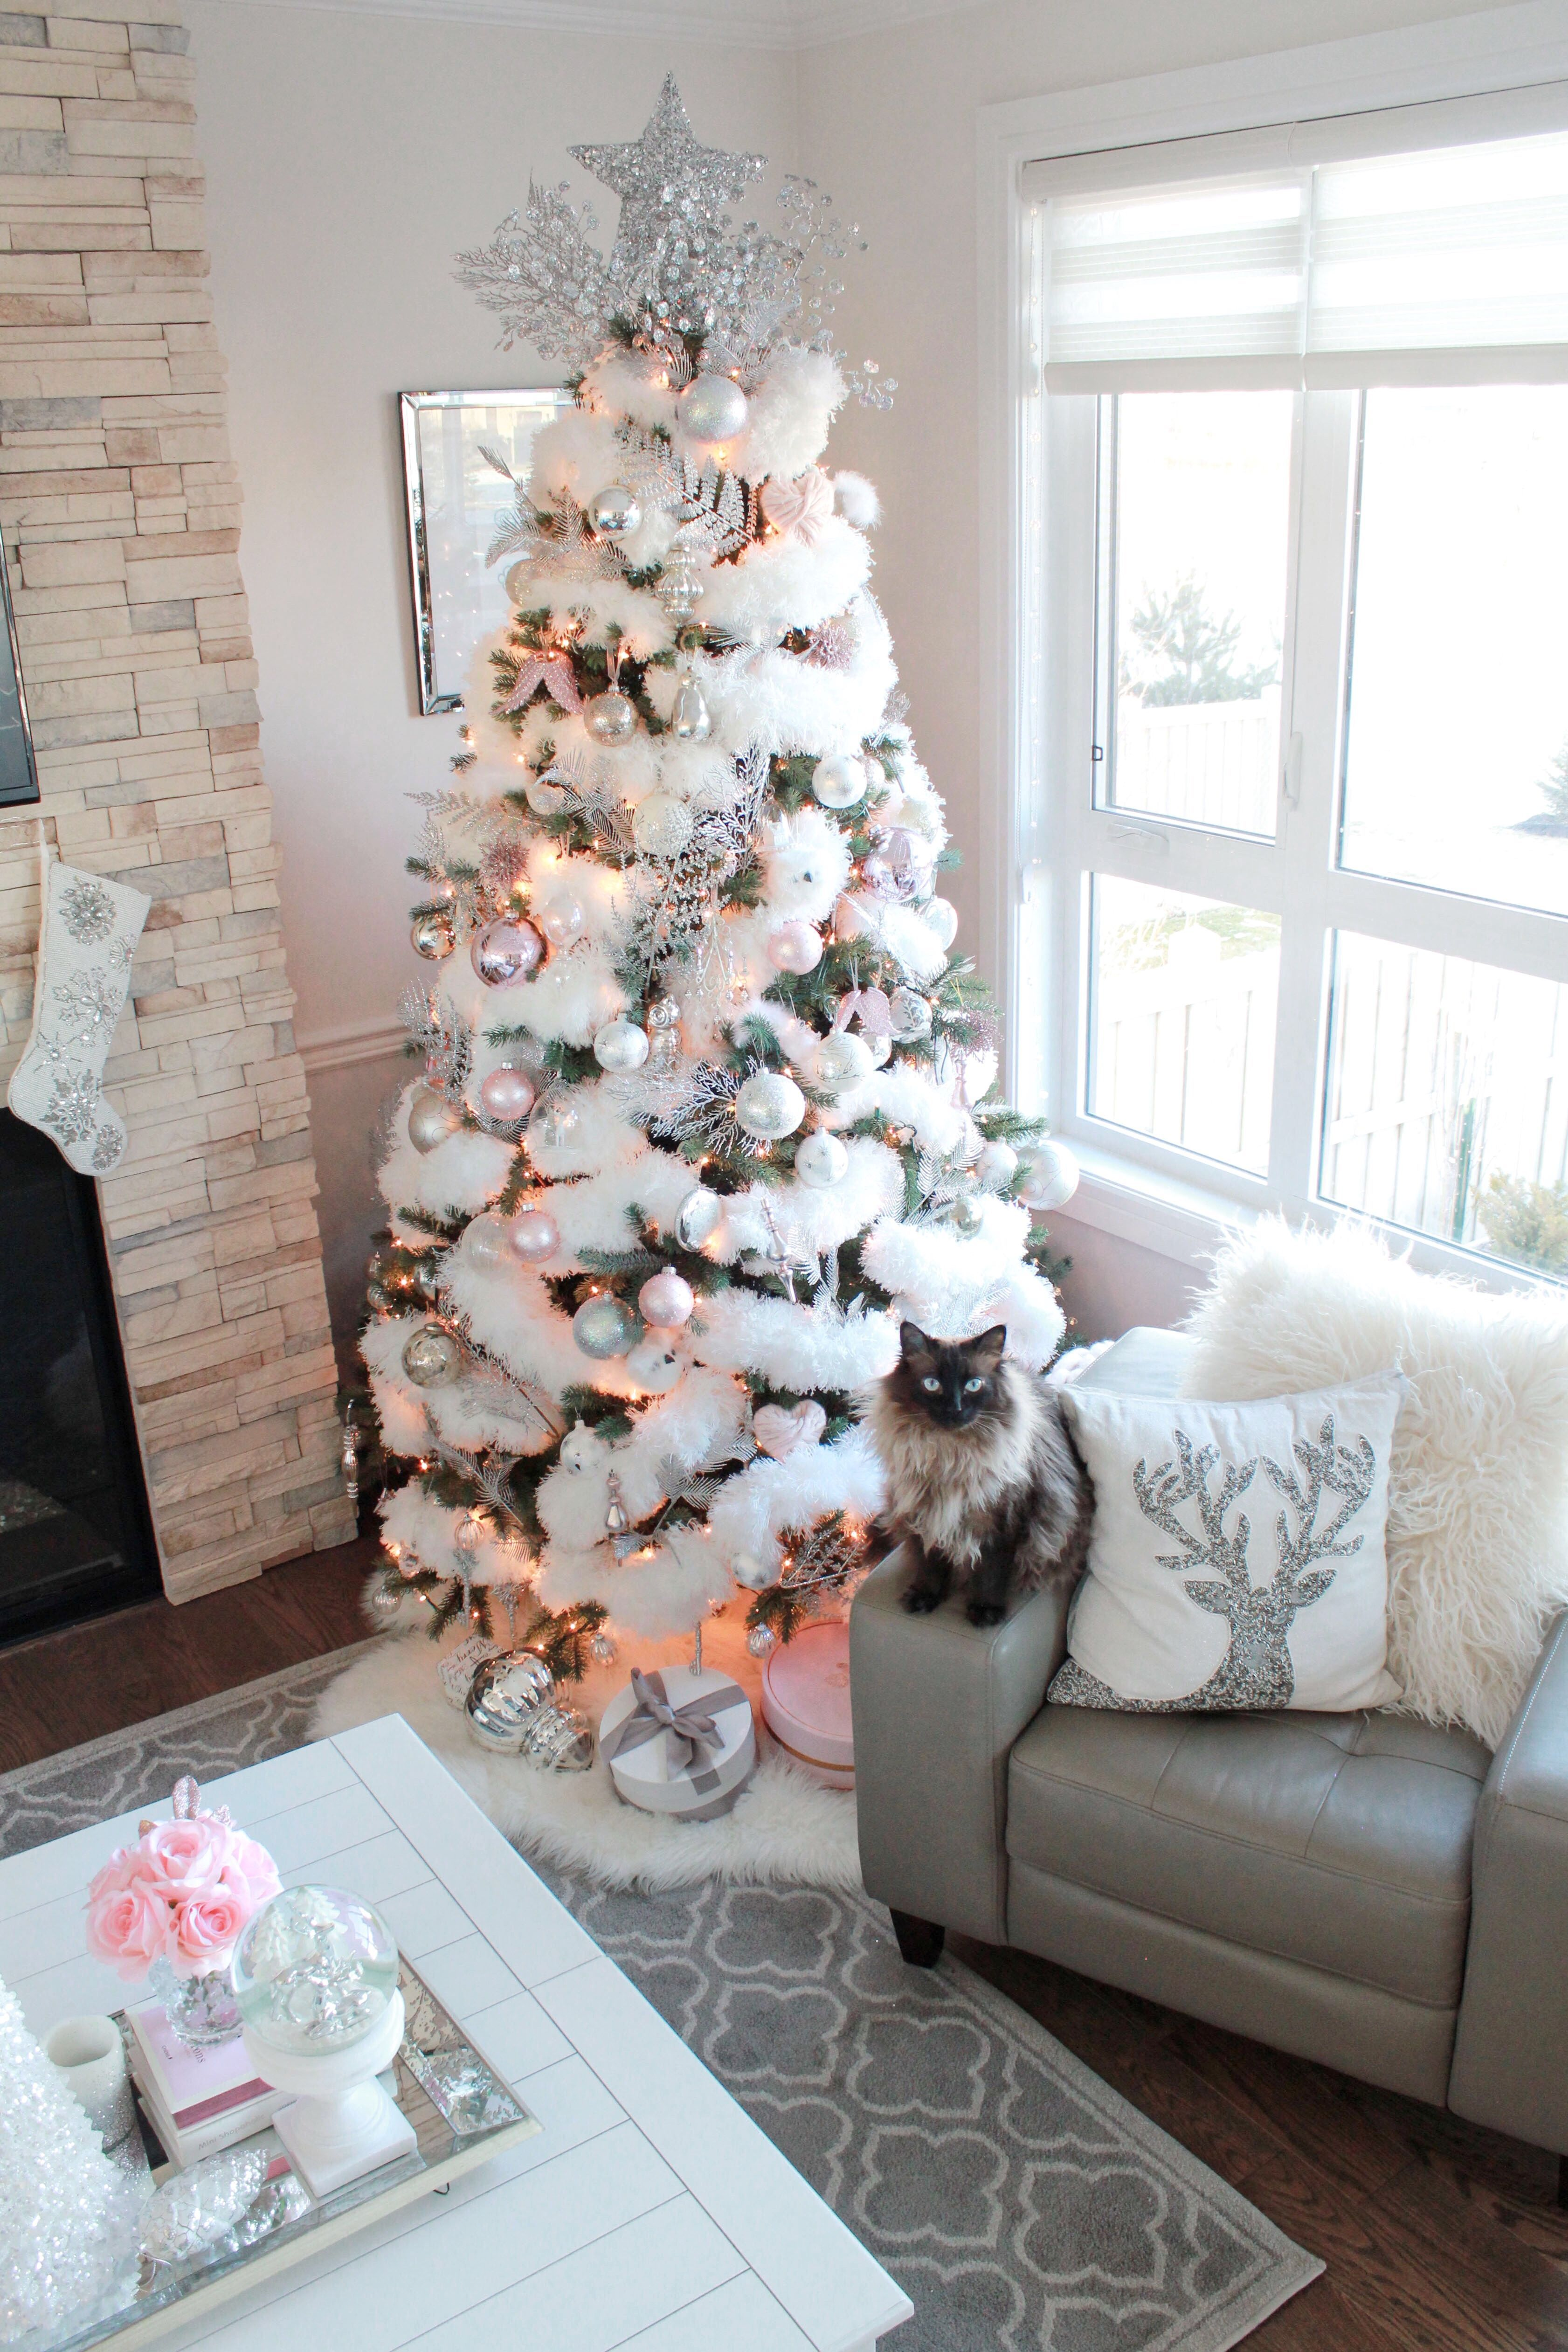 White and pink feathered fluffy Christmas tree Glam bright white